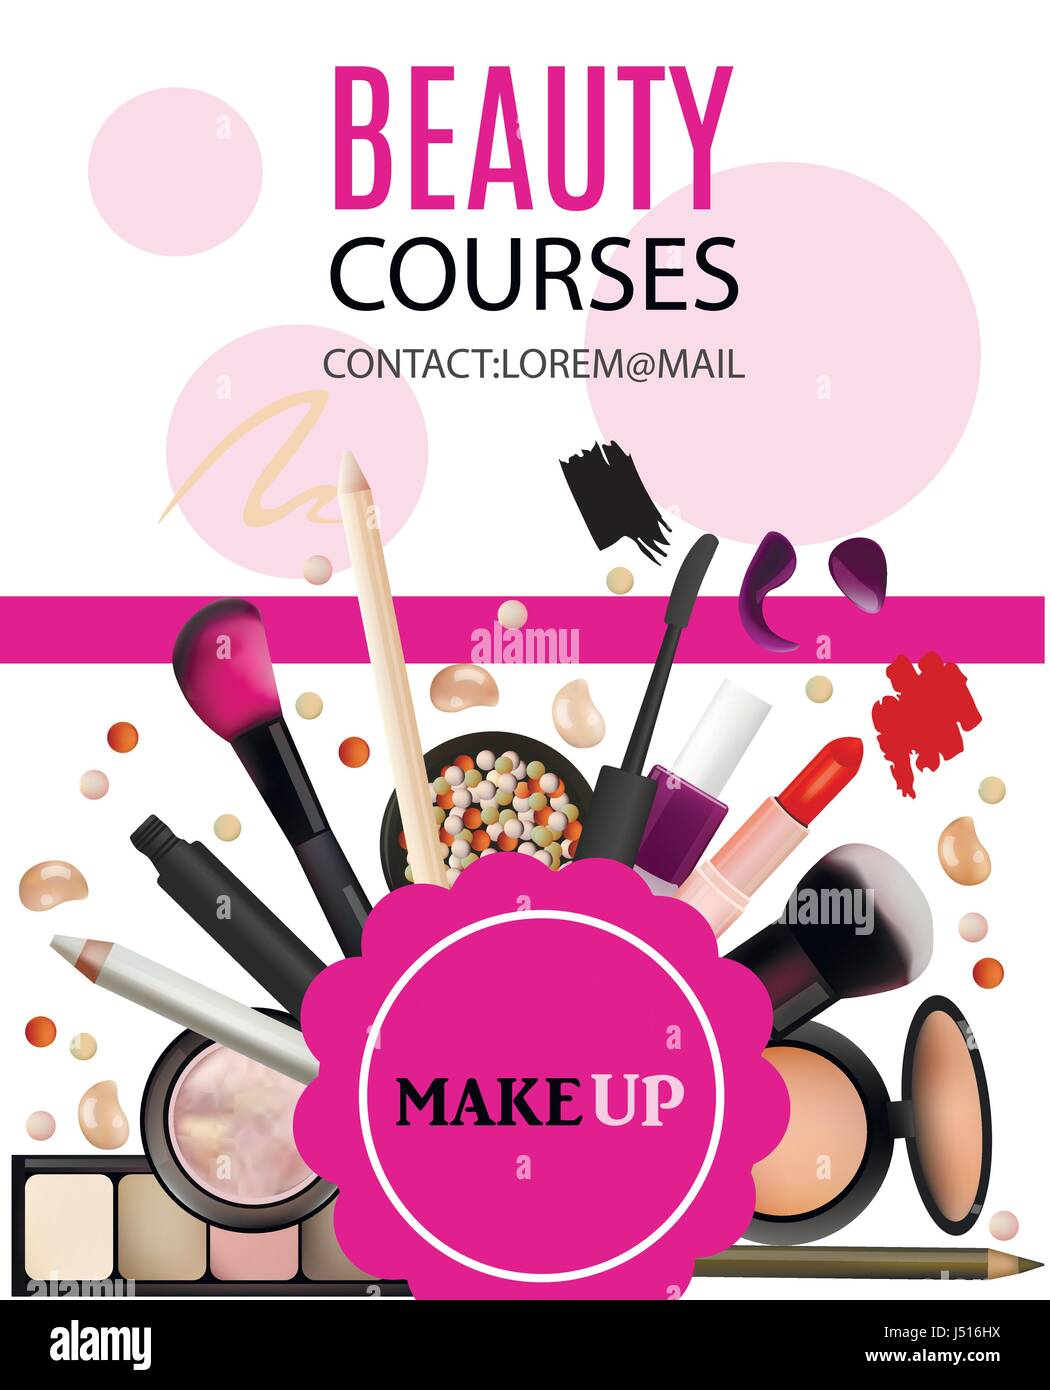 beauty courses poster design cosmetic products professional make